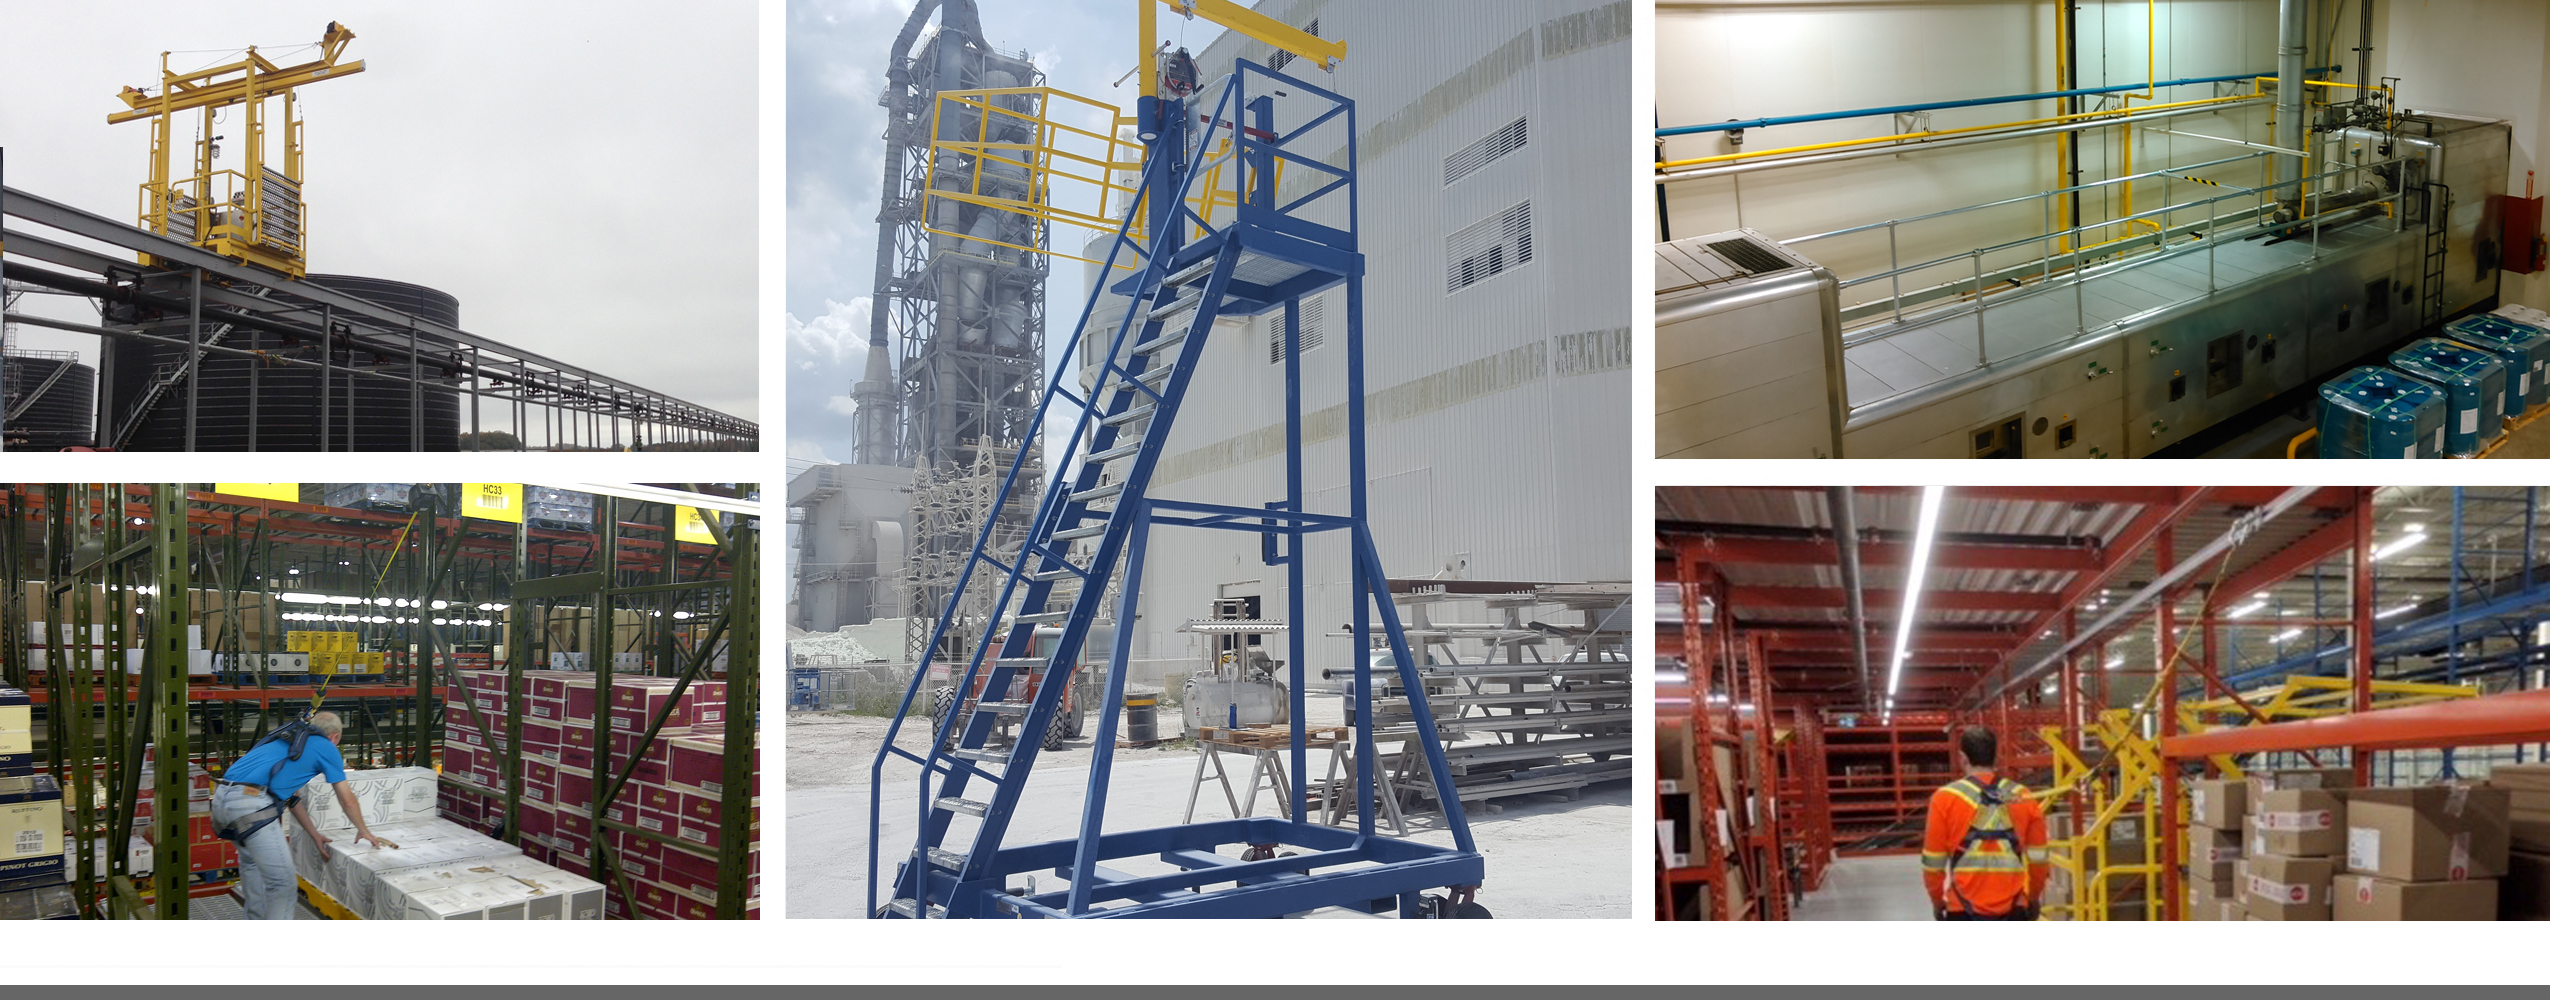 Fall Safety Engineered Solutions